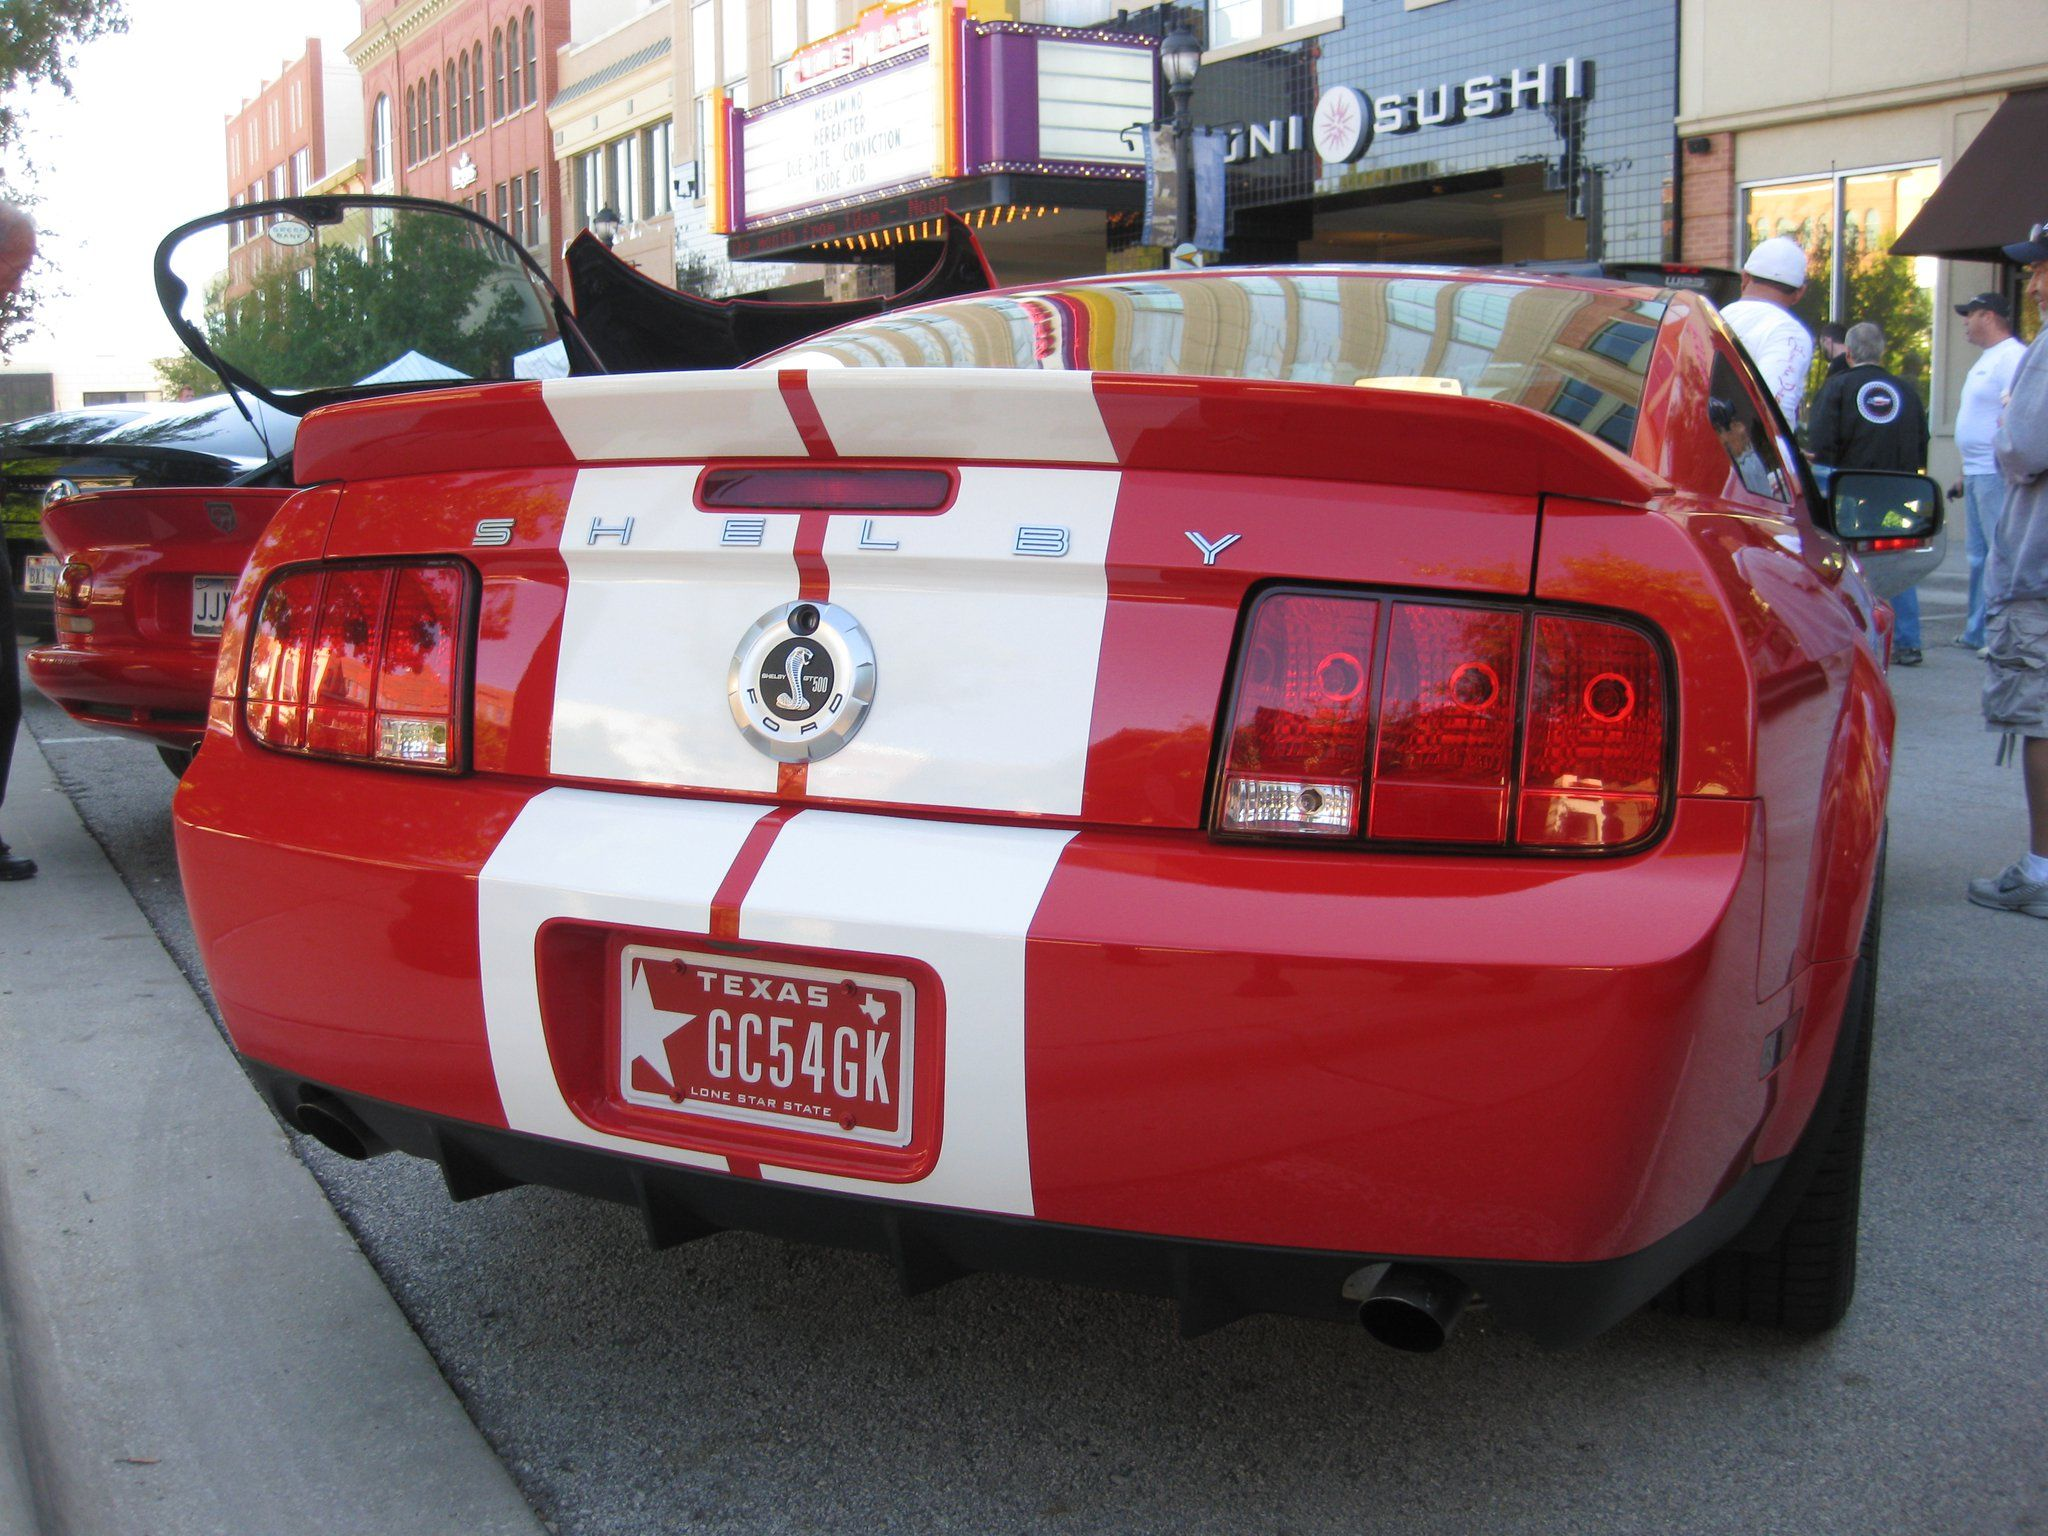 Register car online texas - Lonestar Red Background Only 55 Myplates On Red Shelby Mustang Love It Official Texas